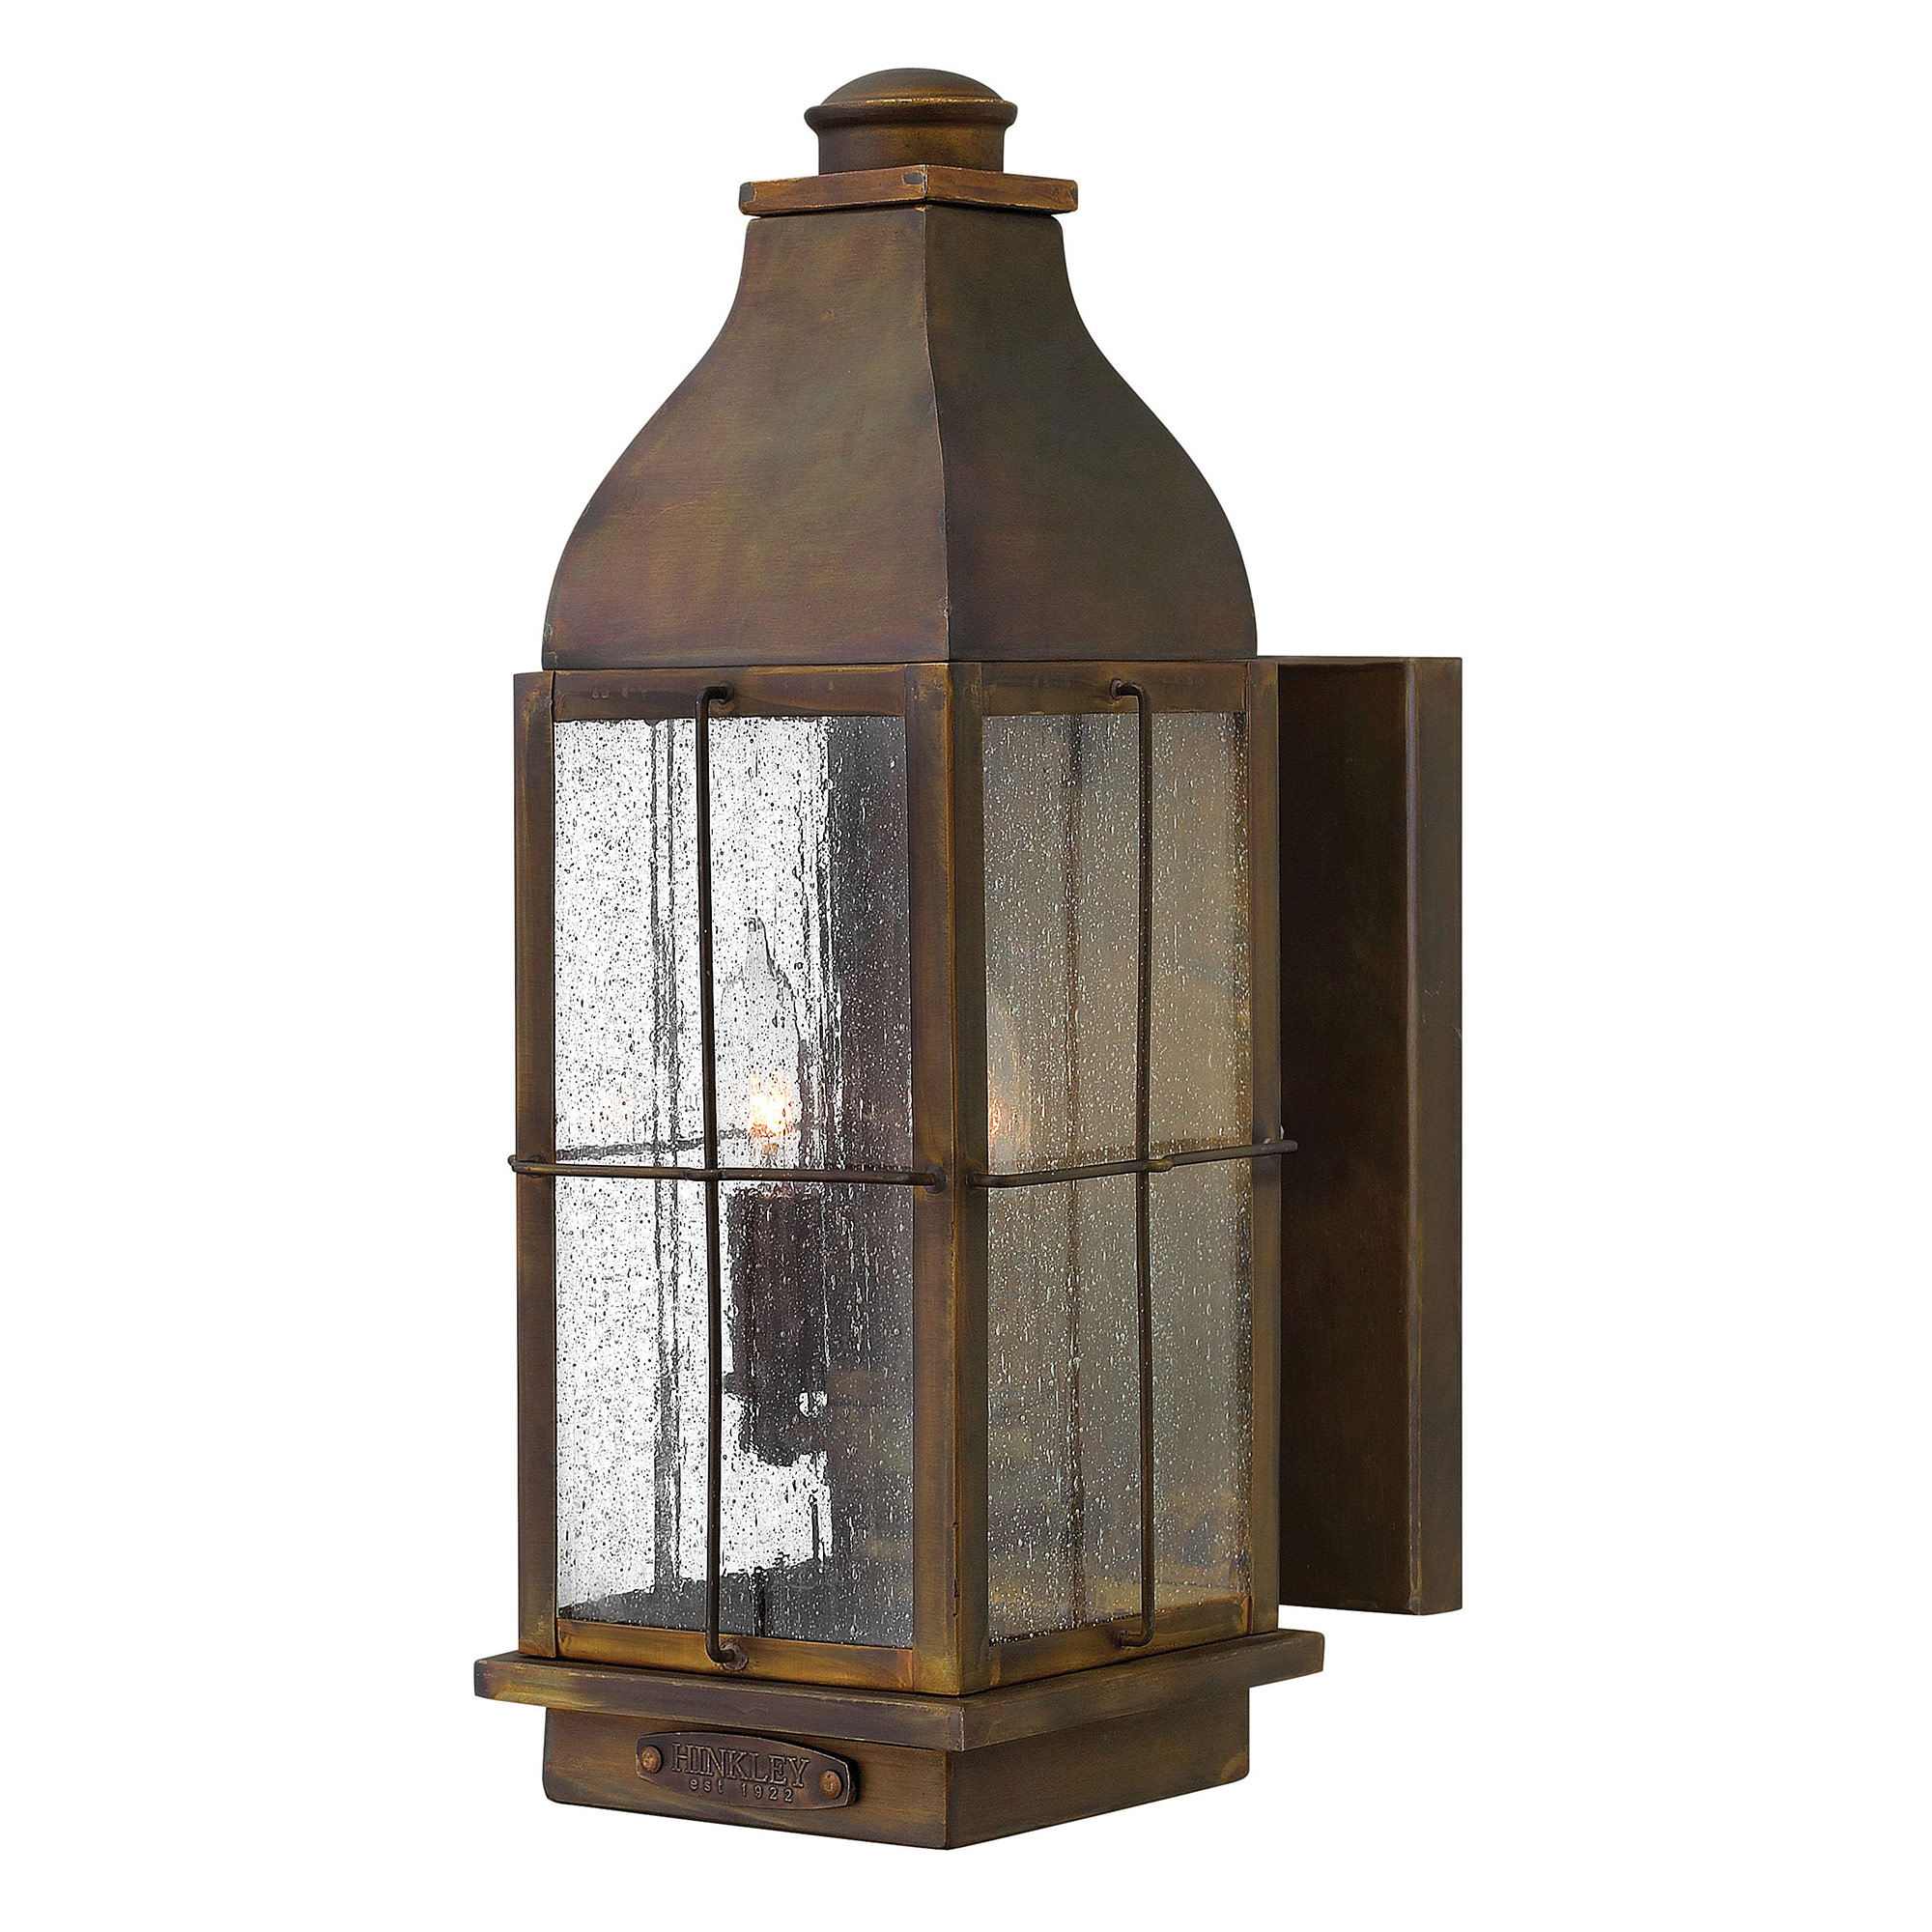 Bingham outdoor wall sconce by hinkley lighting 2044sn for Candelabre exterieur